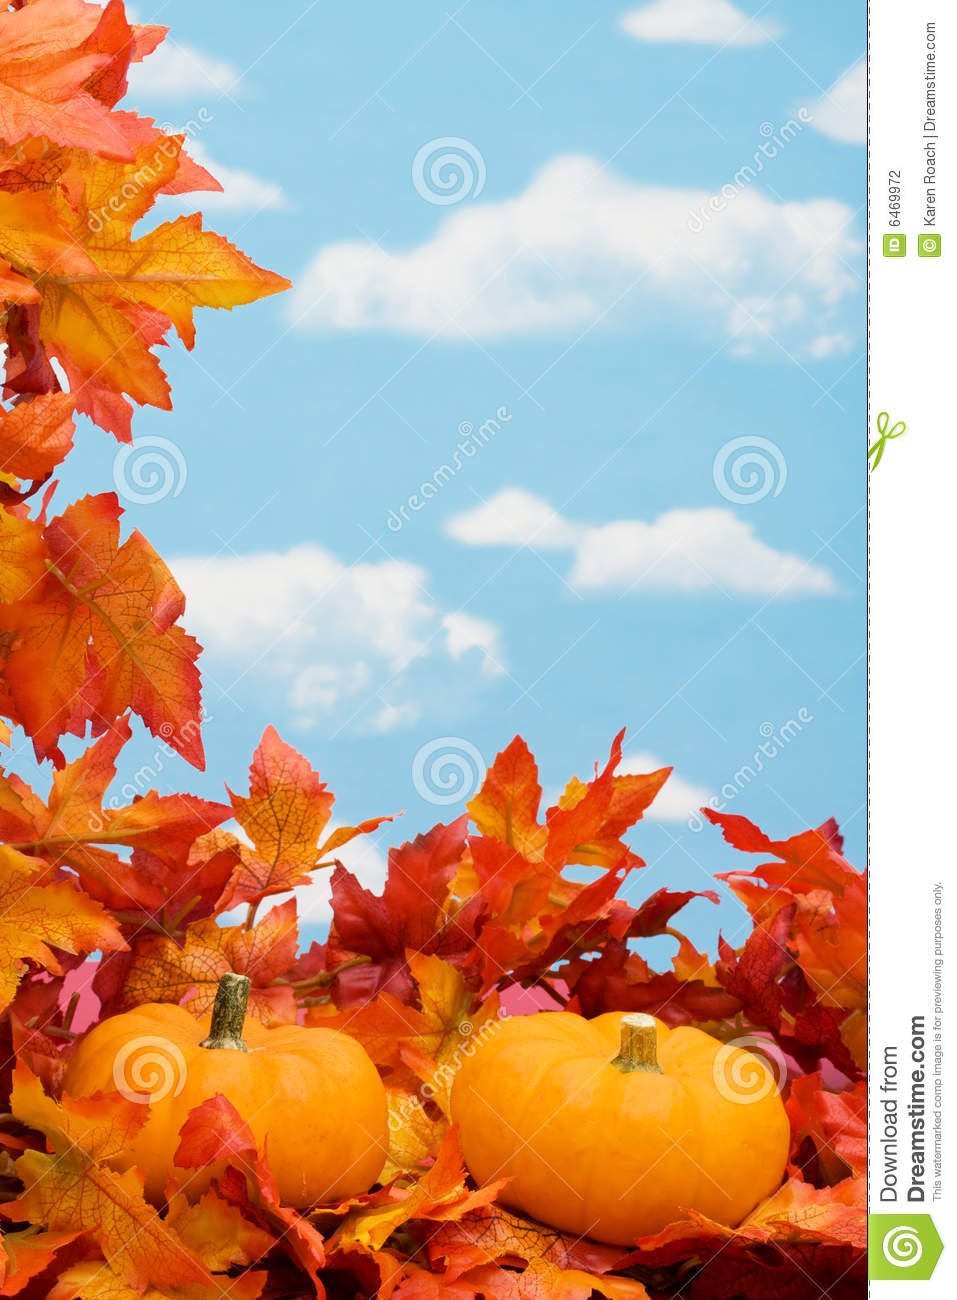 Fall Harvest Border Stock Photography Image 6469972